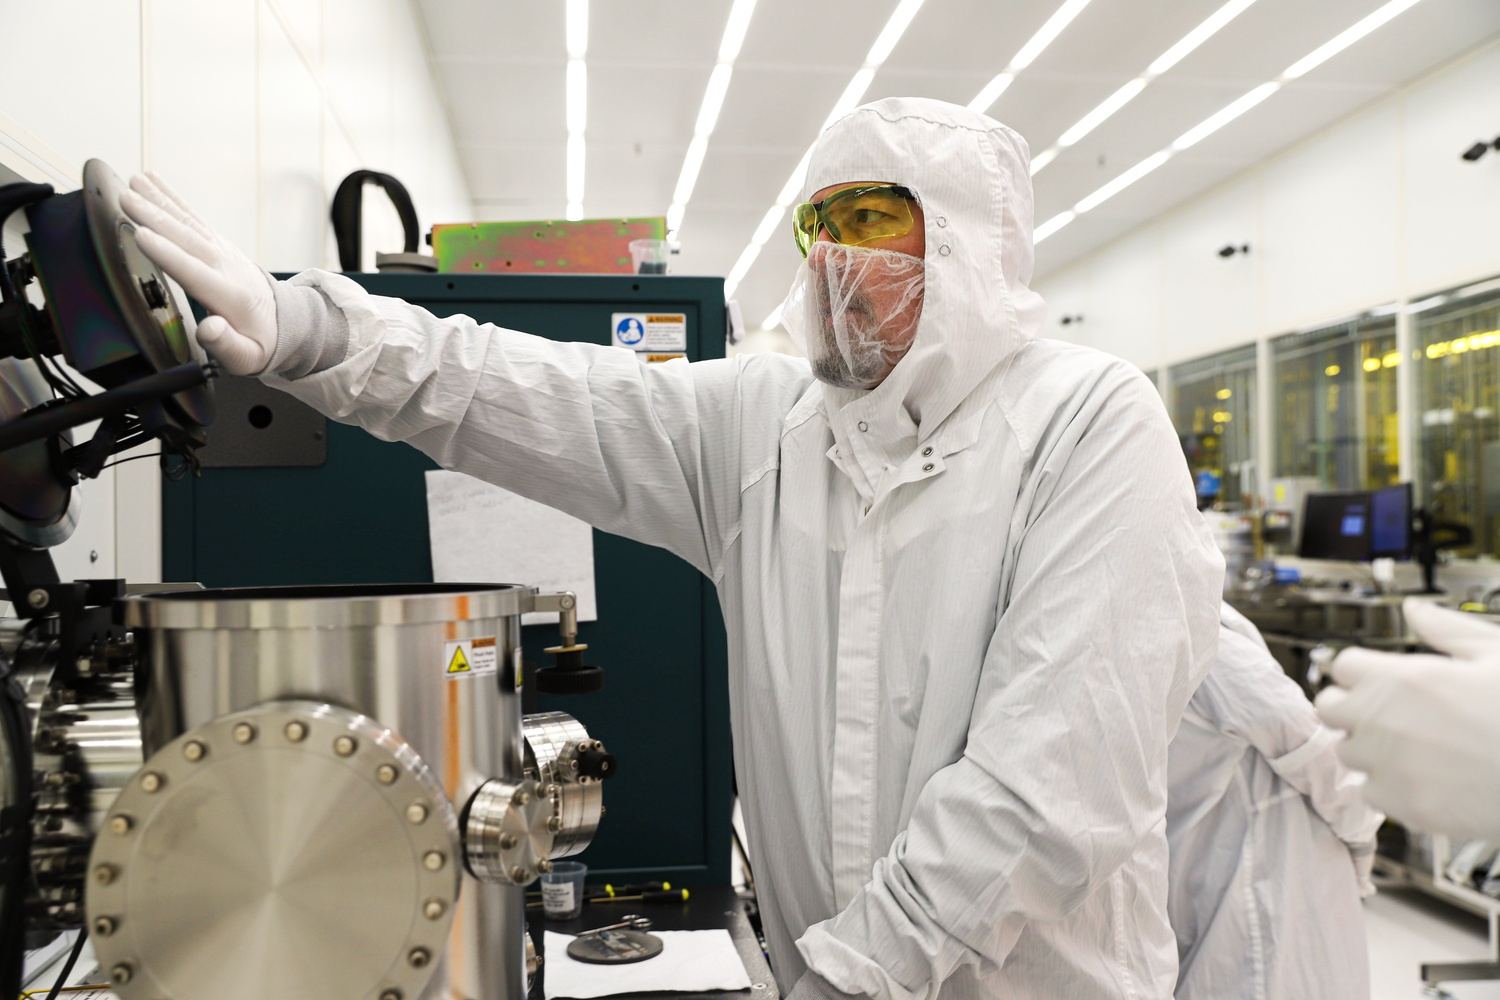 Ed Macomber opens a chamber of a sputter deposition system in Harvard's Center for Nanoscale Systems cleanroom. Macomber is an engineer in the CNS Nanofabrication Group.